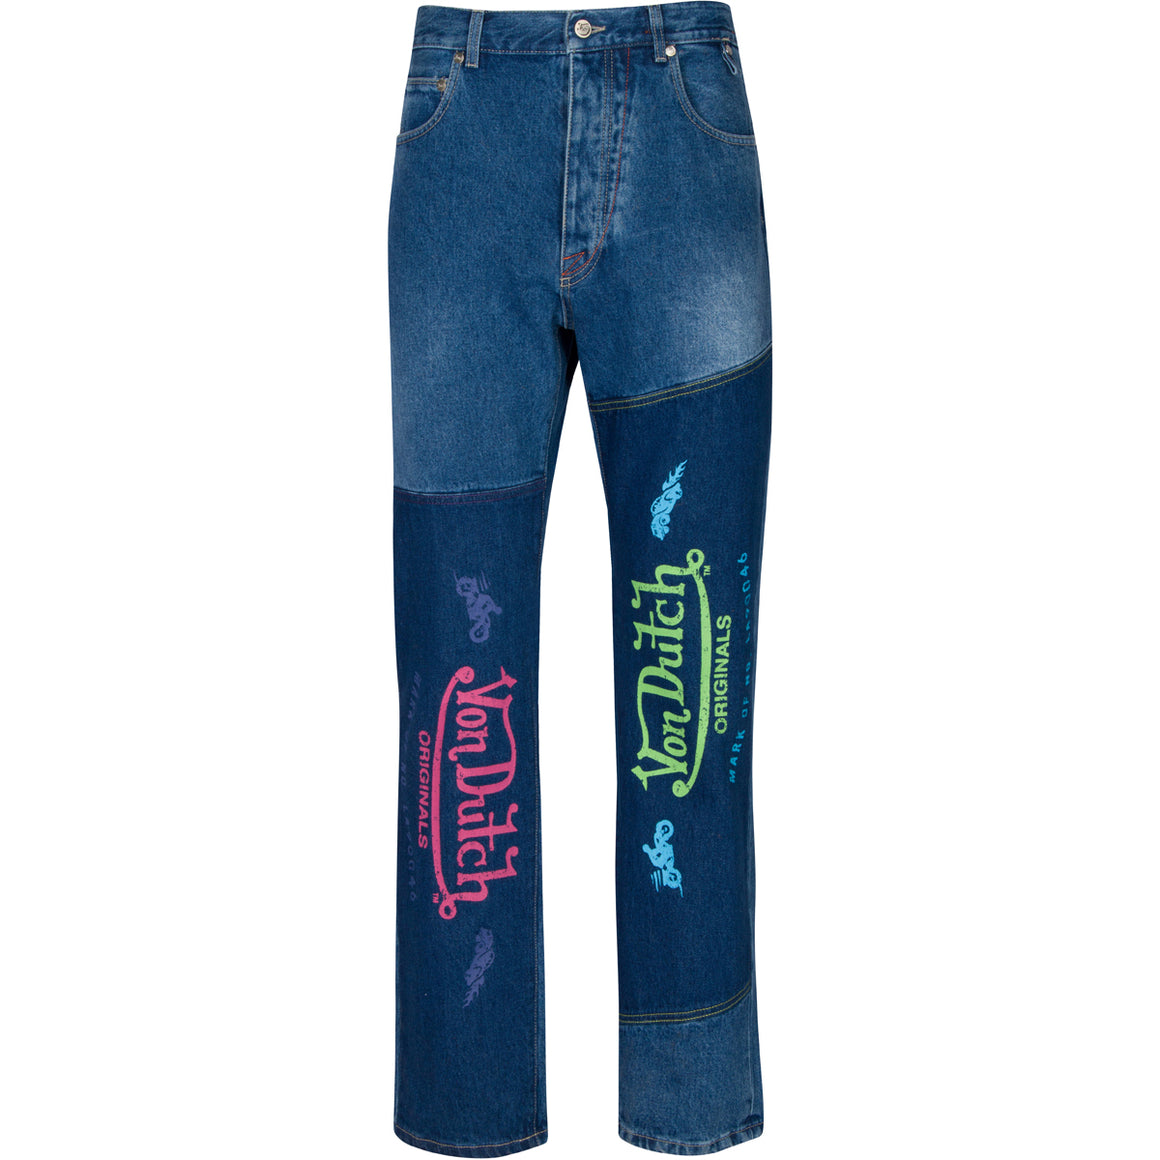 SCOTTY DENIM JEANS